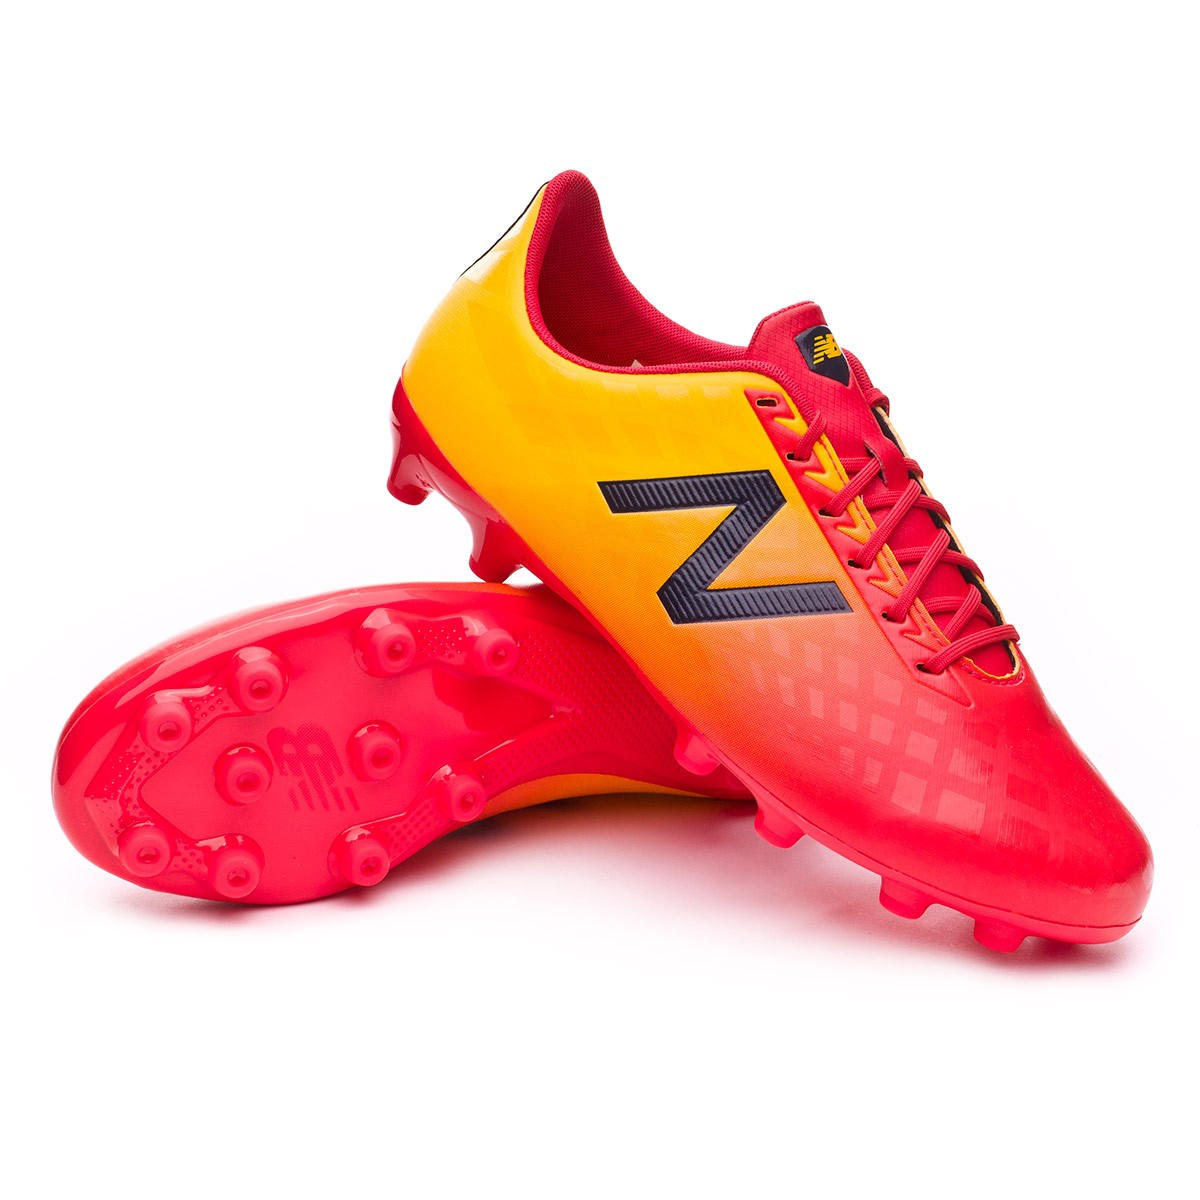 a127787119d9 Football Boots New Balance Furon 4.0 Dispatch AG Flame - Tienda de ...